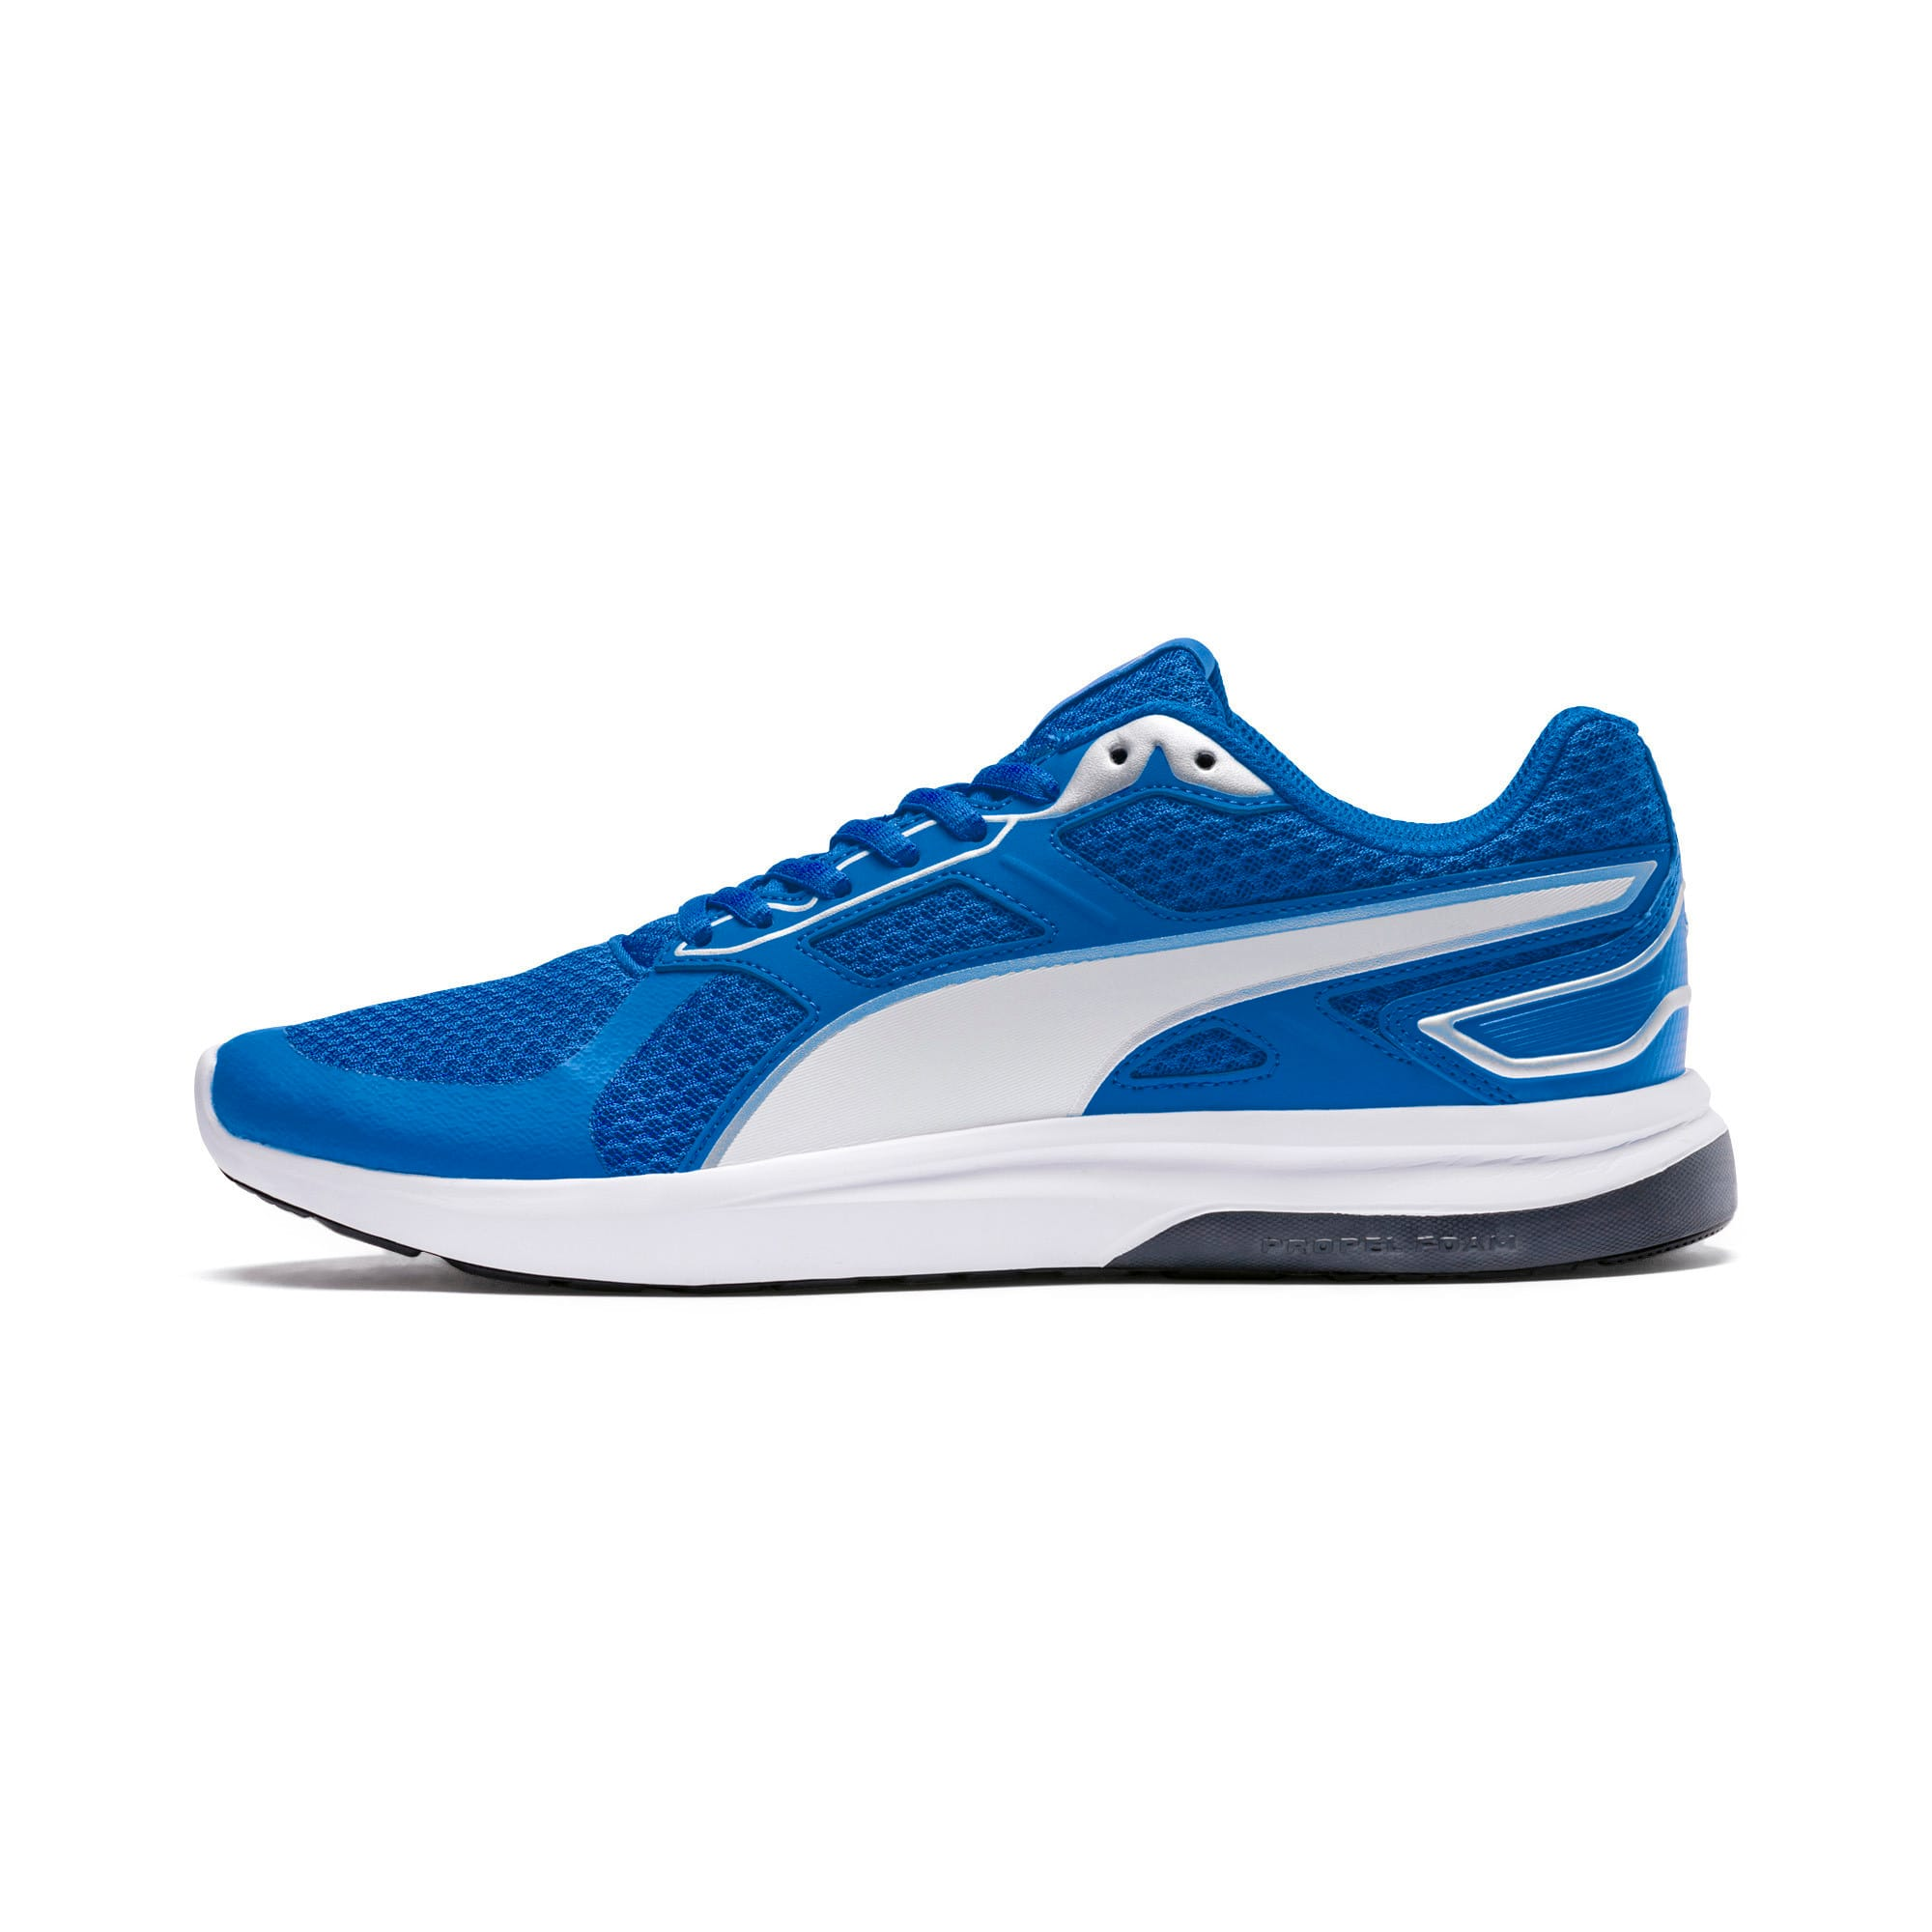 Thumbnail 1 of Escaper Tech Sneakers, Strong Bl-Puma Wh-Iron Gate, medium-IND